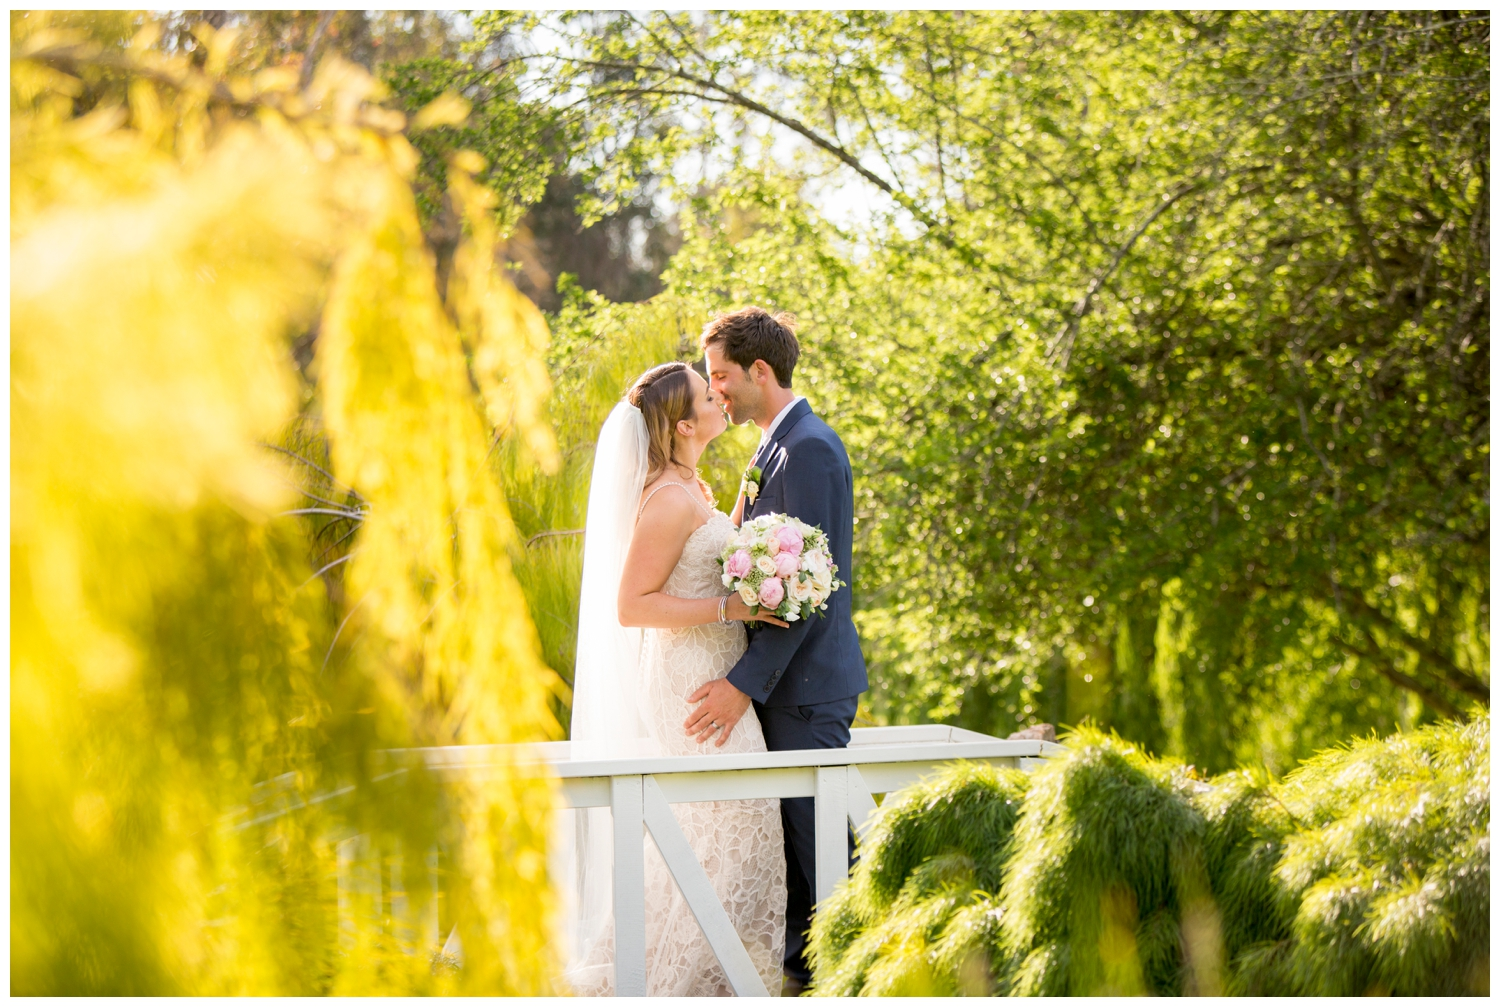 Fern Bank Gardens Donnybrook Sanctury Golf Resort Wedding Photographer_0241.jpg